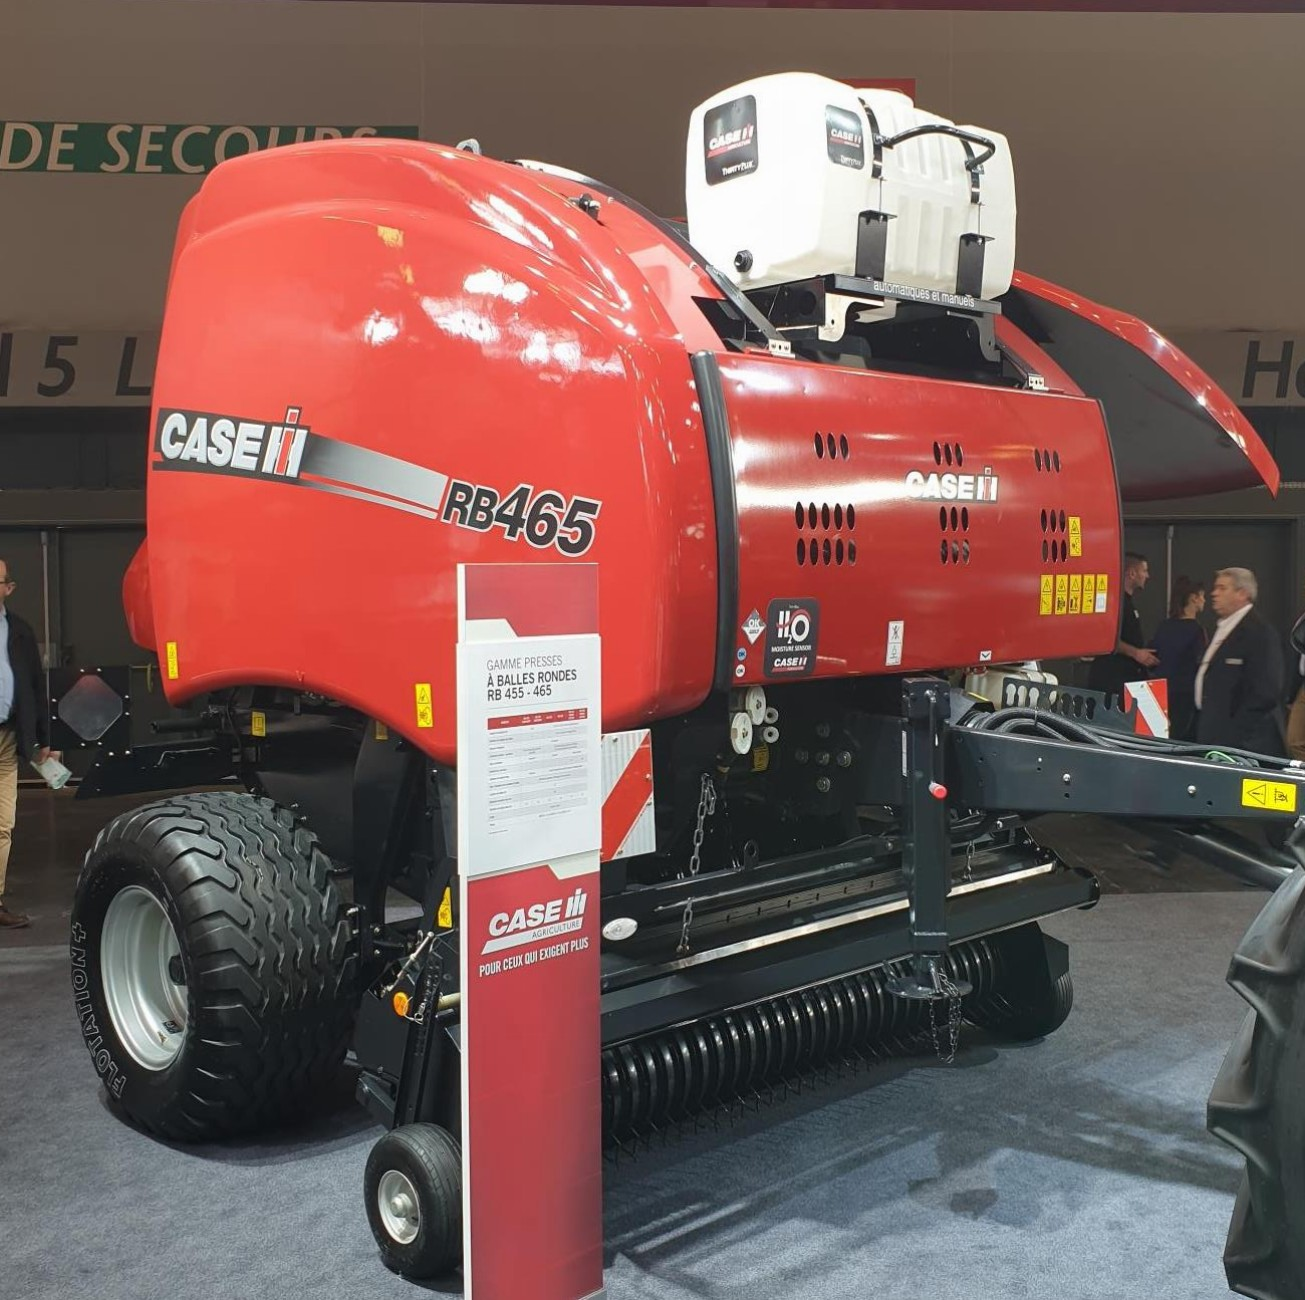 Case IH RB baler at SIMA 2019